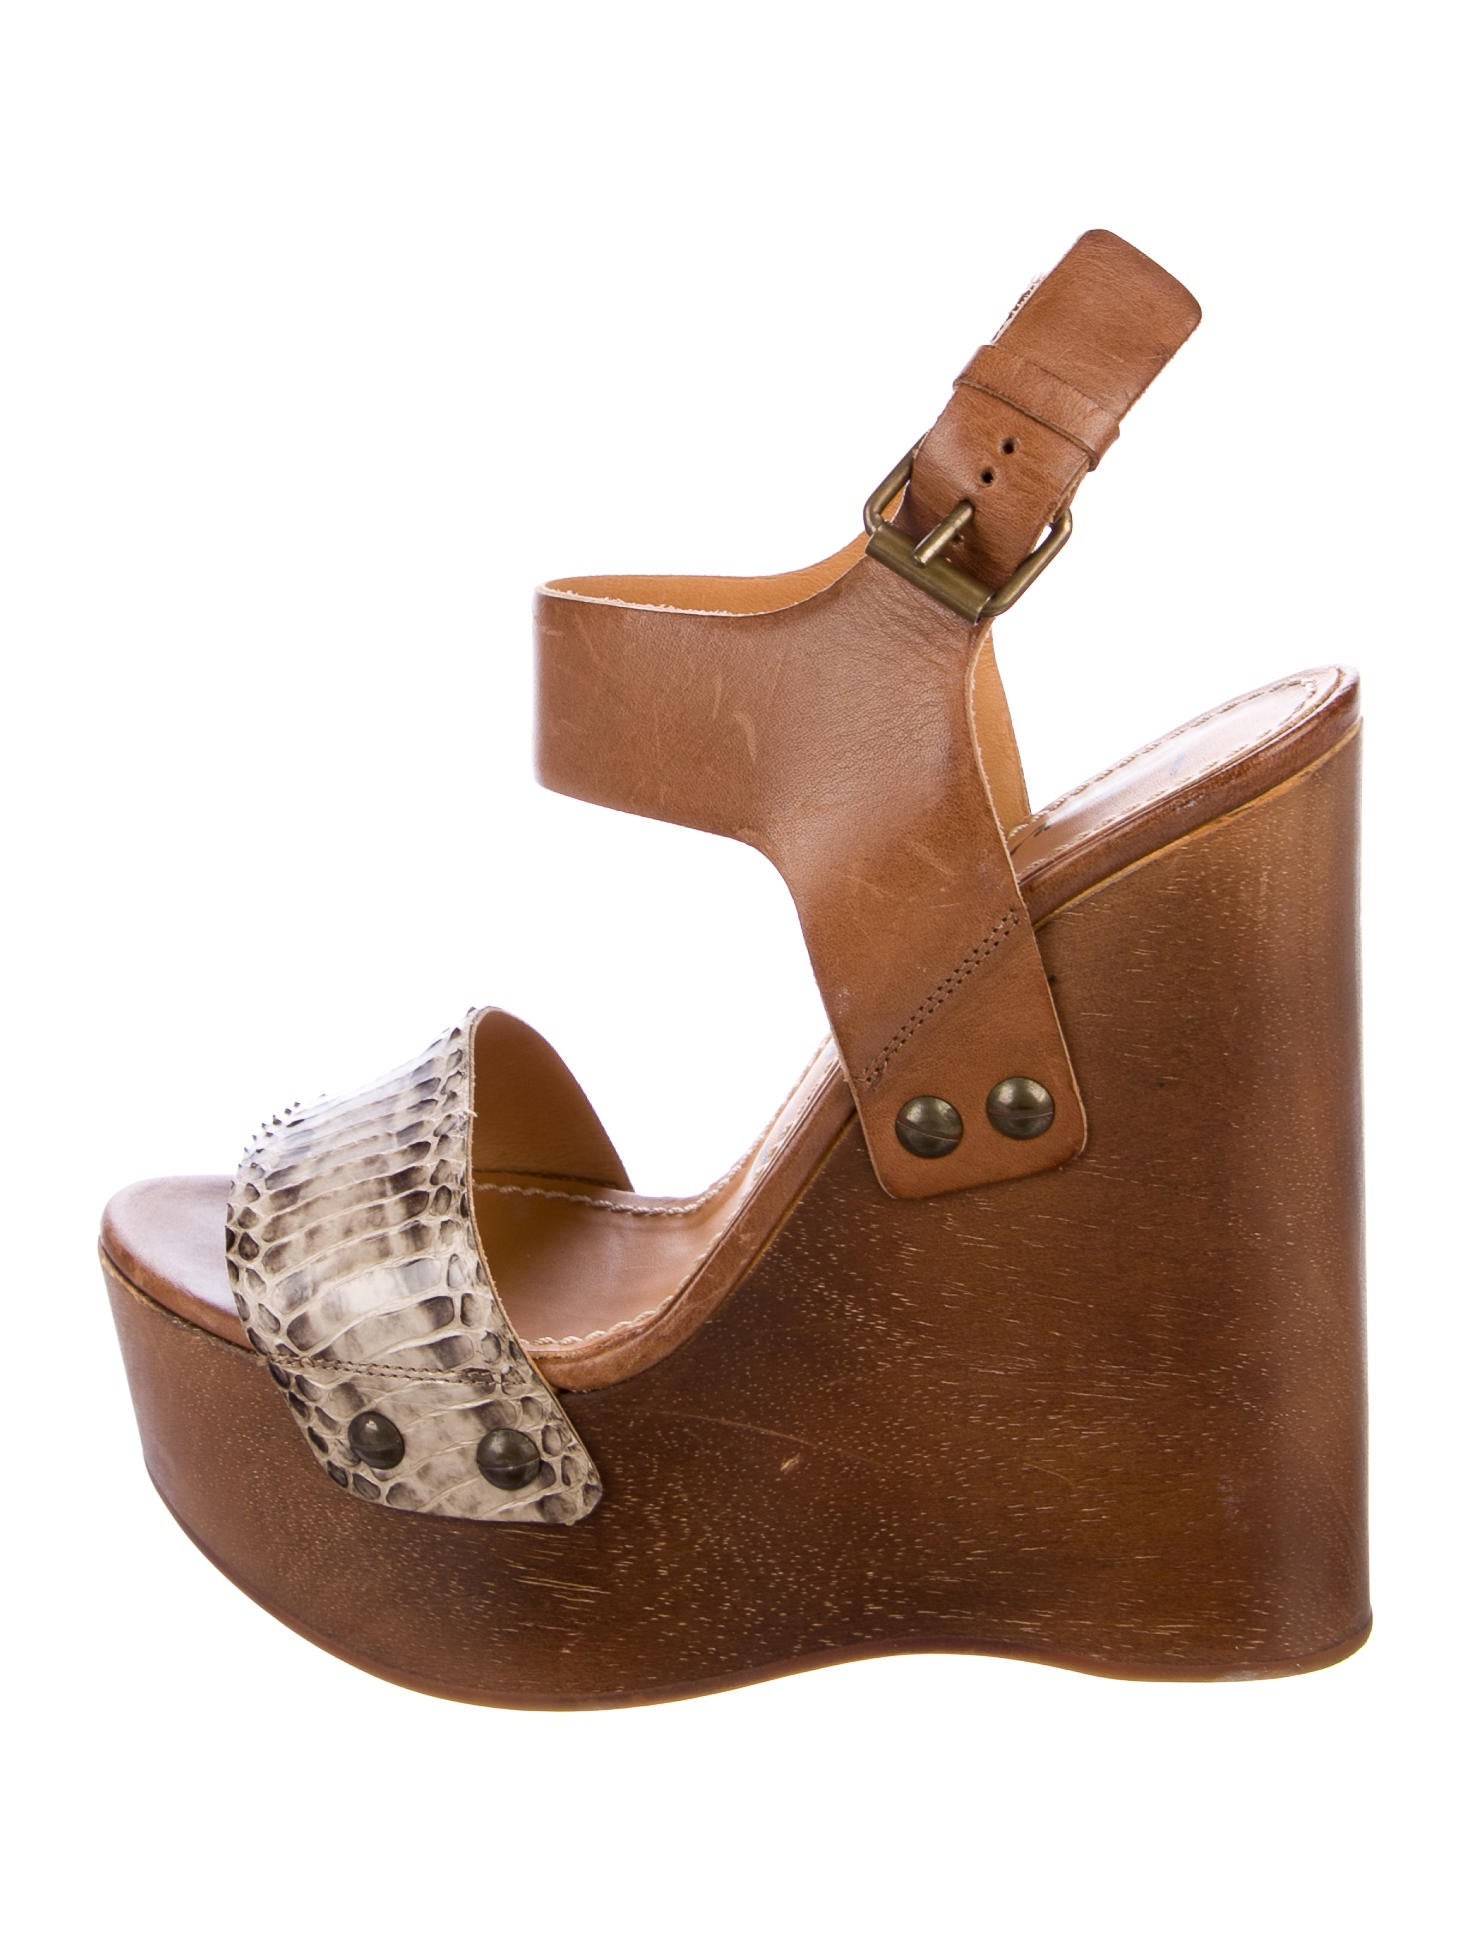 prices cheap price popular online Lanvin Snakeskin-Trimmed Platform Wedges clearance latest collections JsOBF0